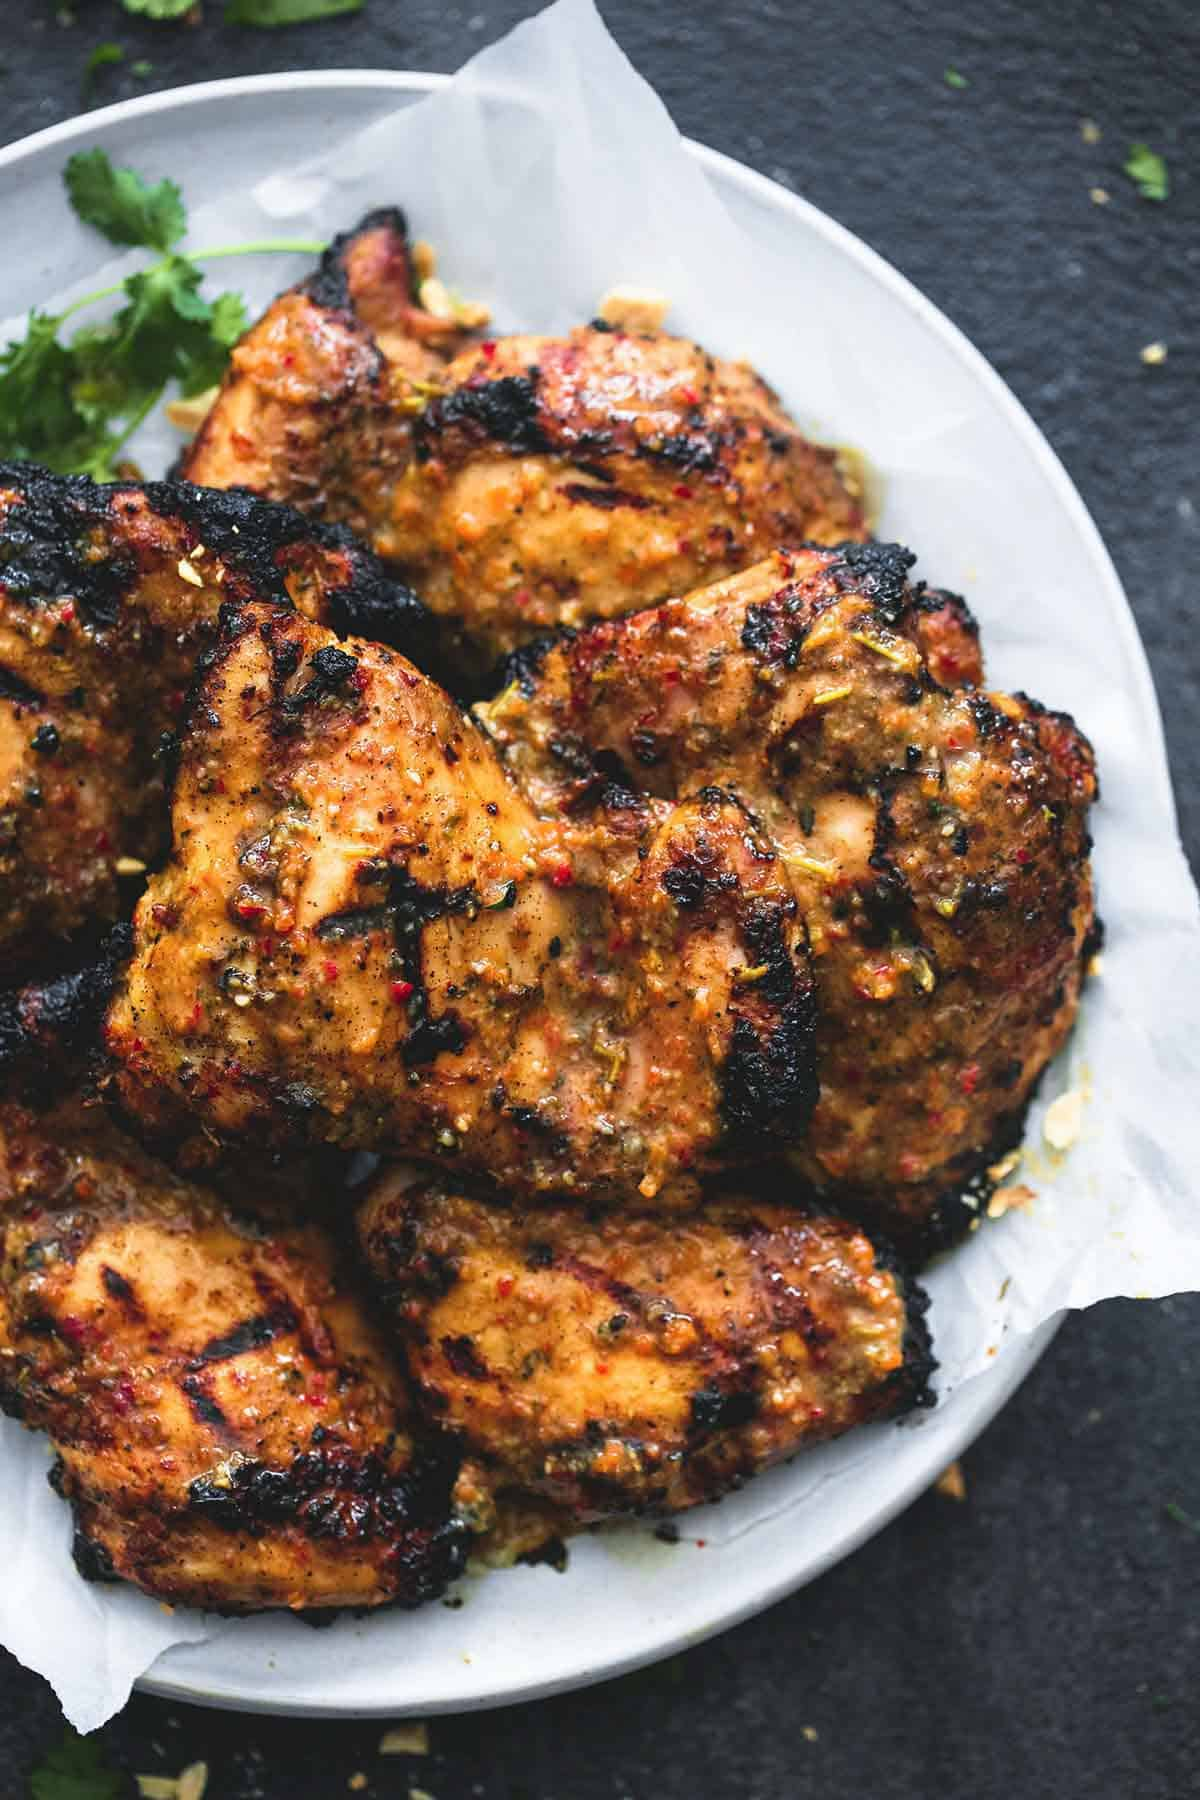 history of jamaican jerk chicken Jerk is a style of cooking native to jamaica in which meats are dry-rubbed or wet marinated with a very hot spice mixture called jamaican jerk spice jerk seasoning is traditionally applied to pork and chicken.